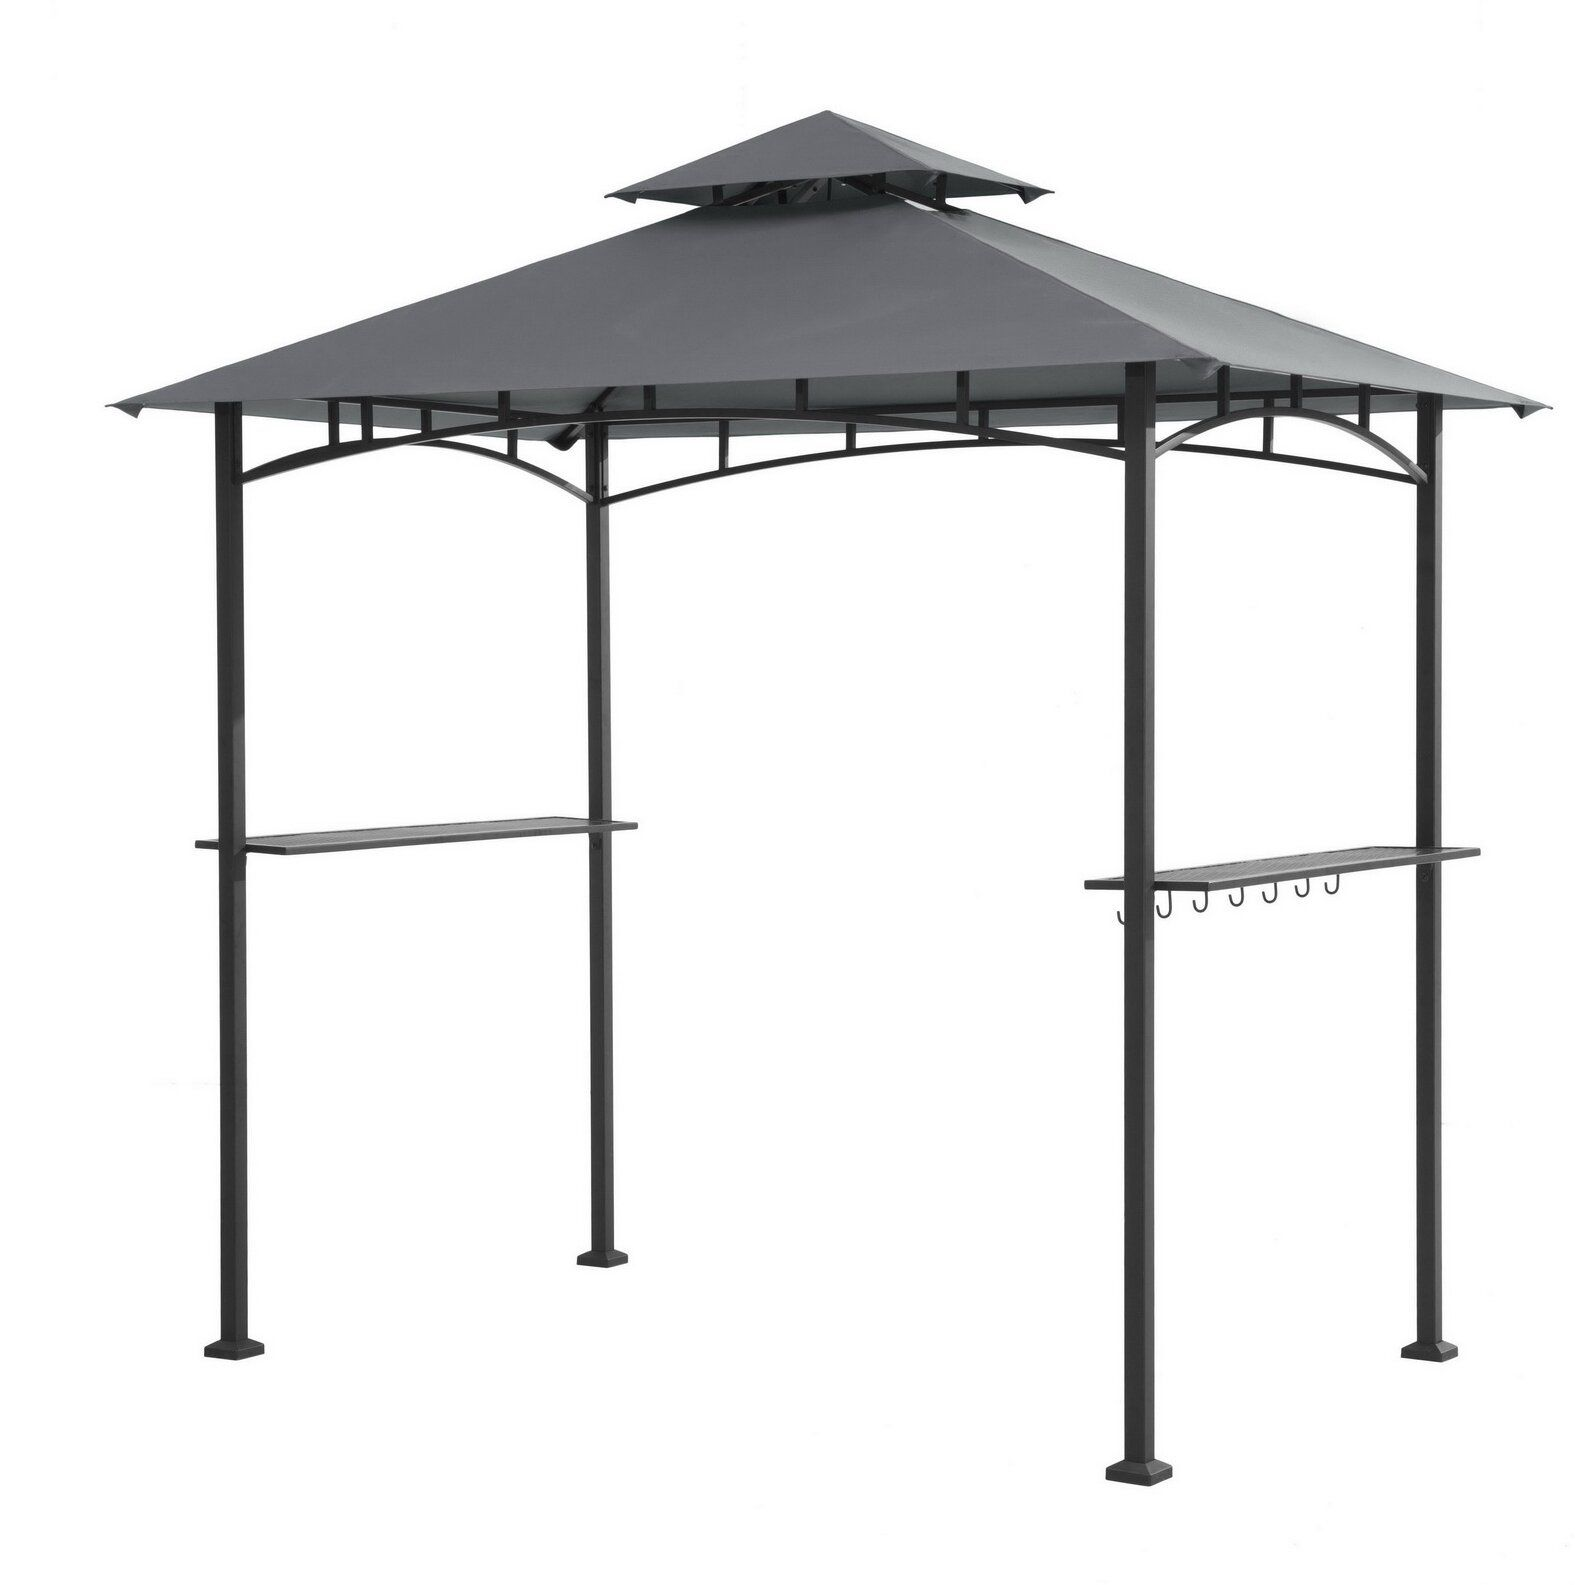 Replacement Canopy For Sylvan Grill Gazebo In 2020 Grill Gazebo Gazebo Replacement Canopy